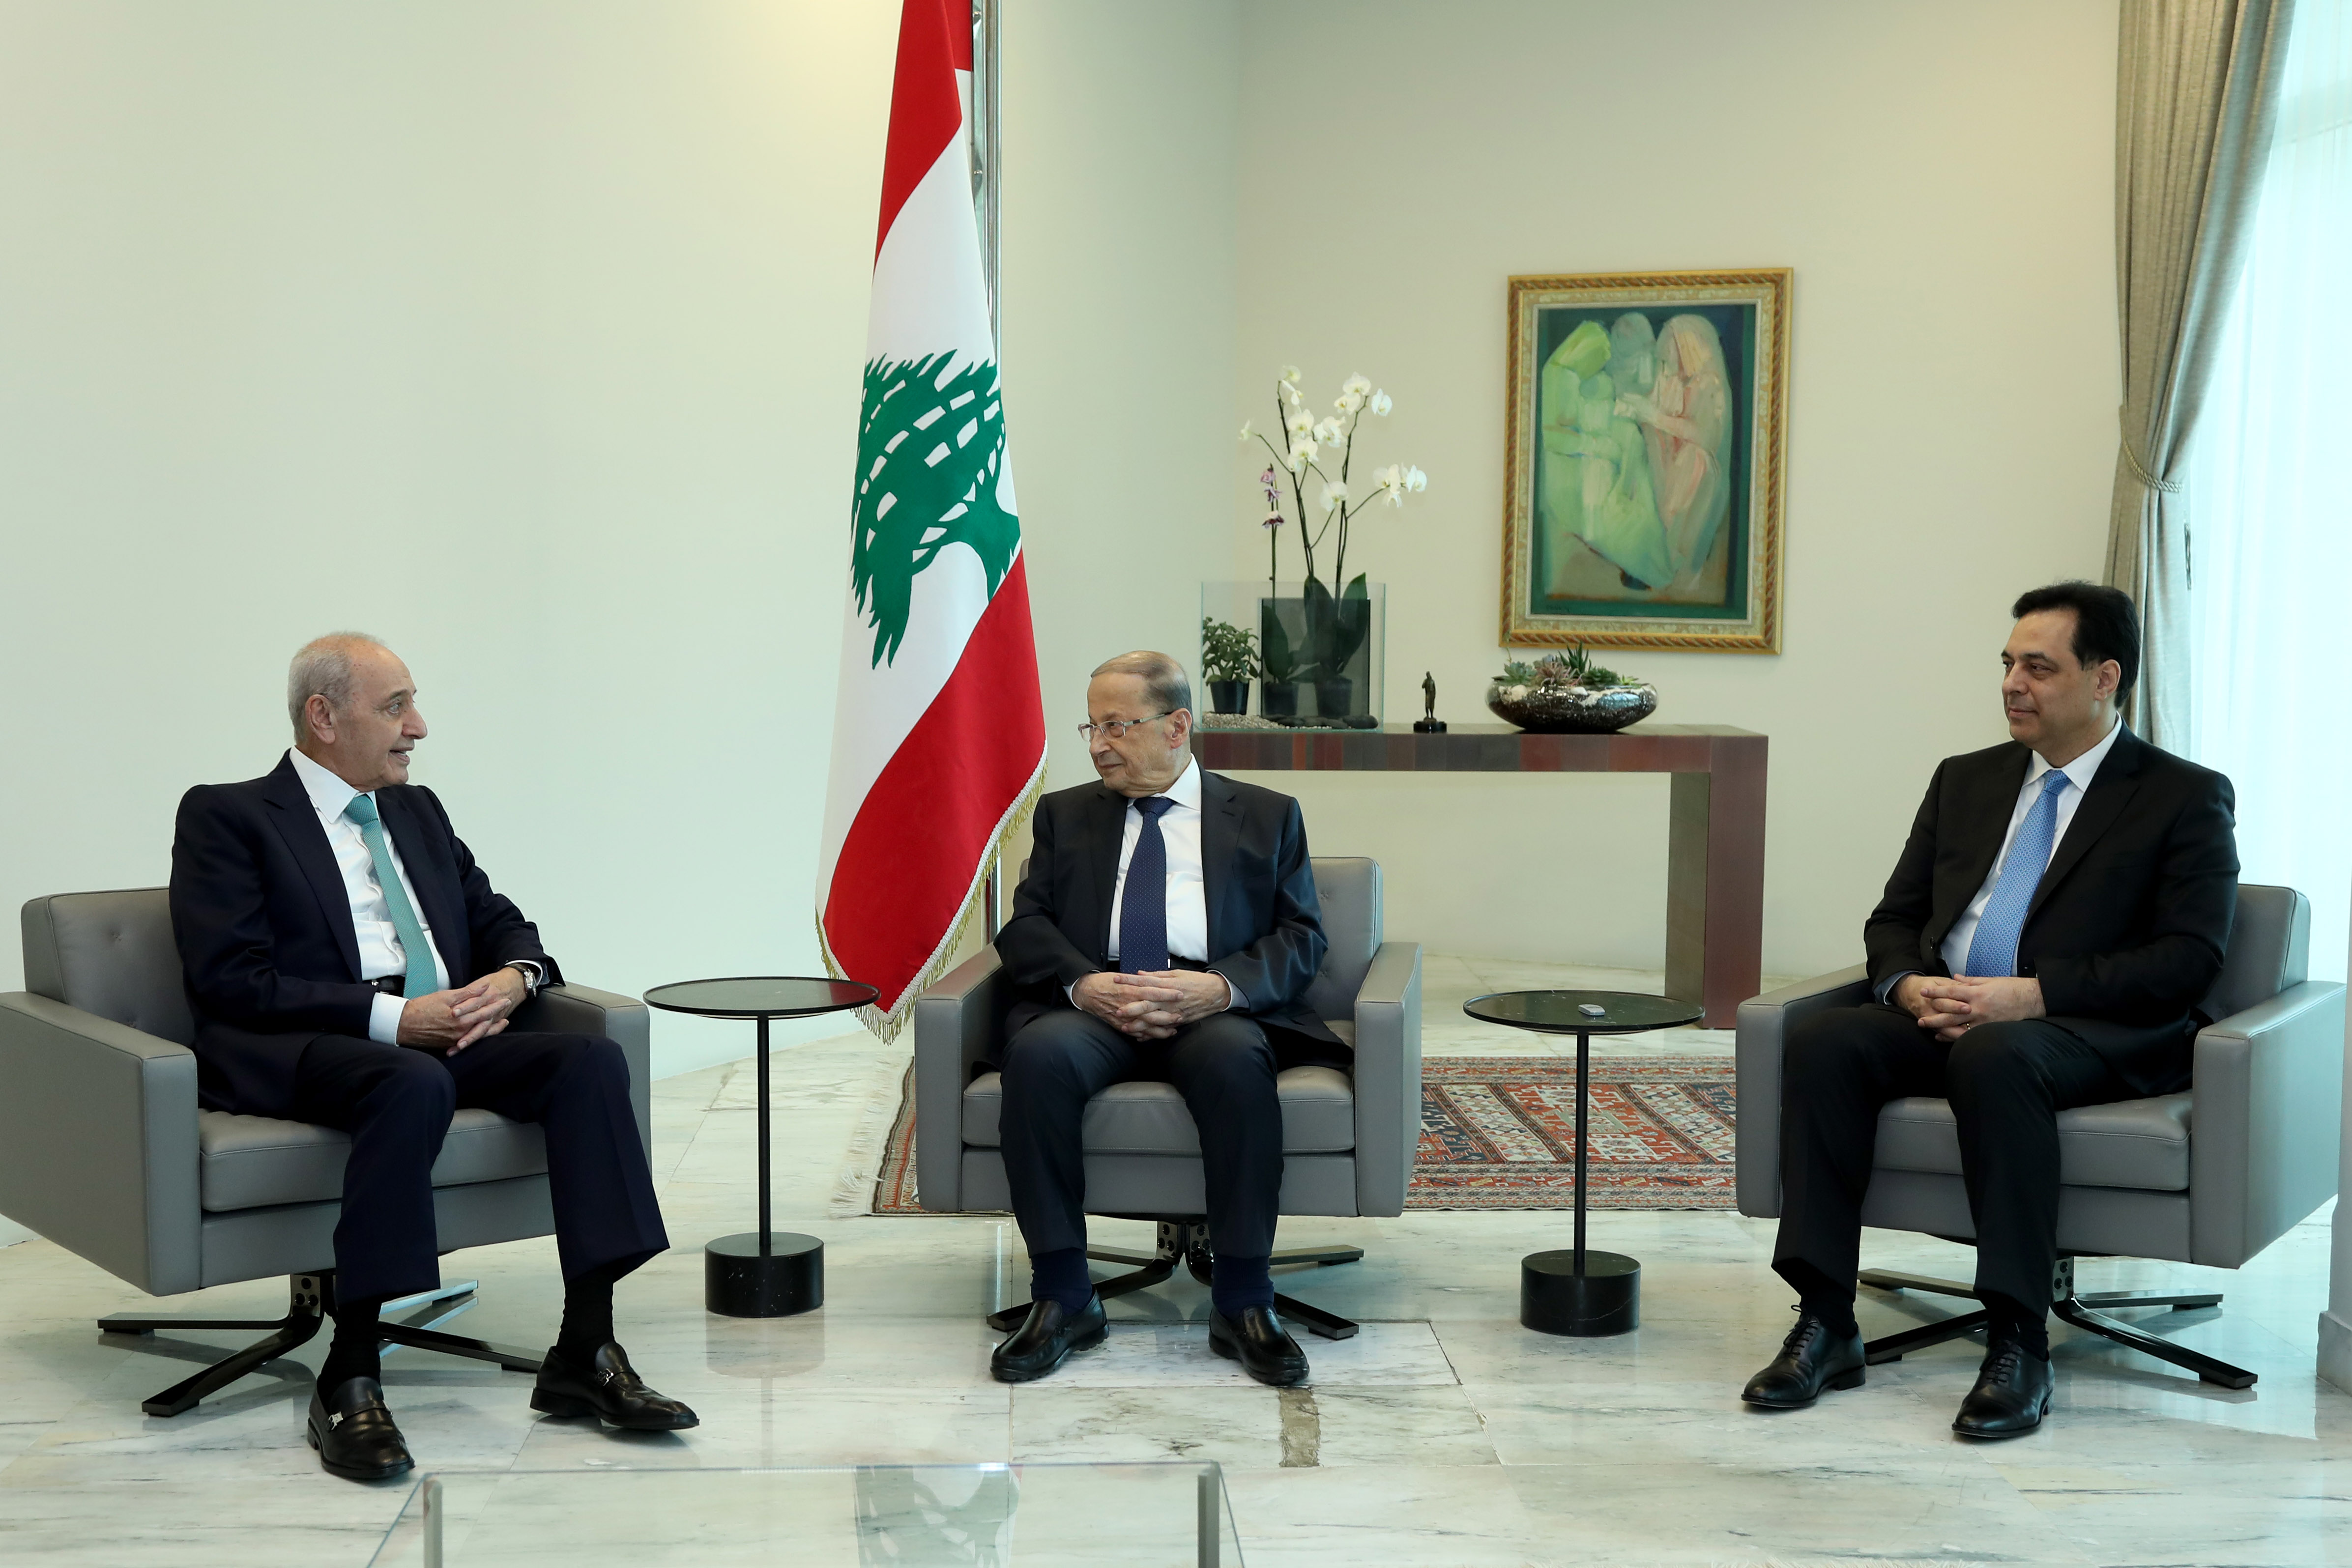 1 - President Michel Aoun meets with Presidents Berri and Diab